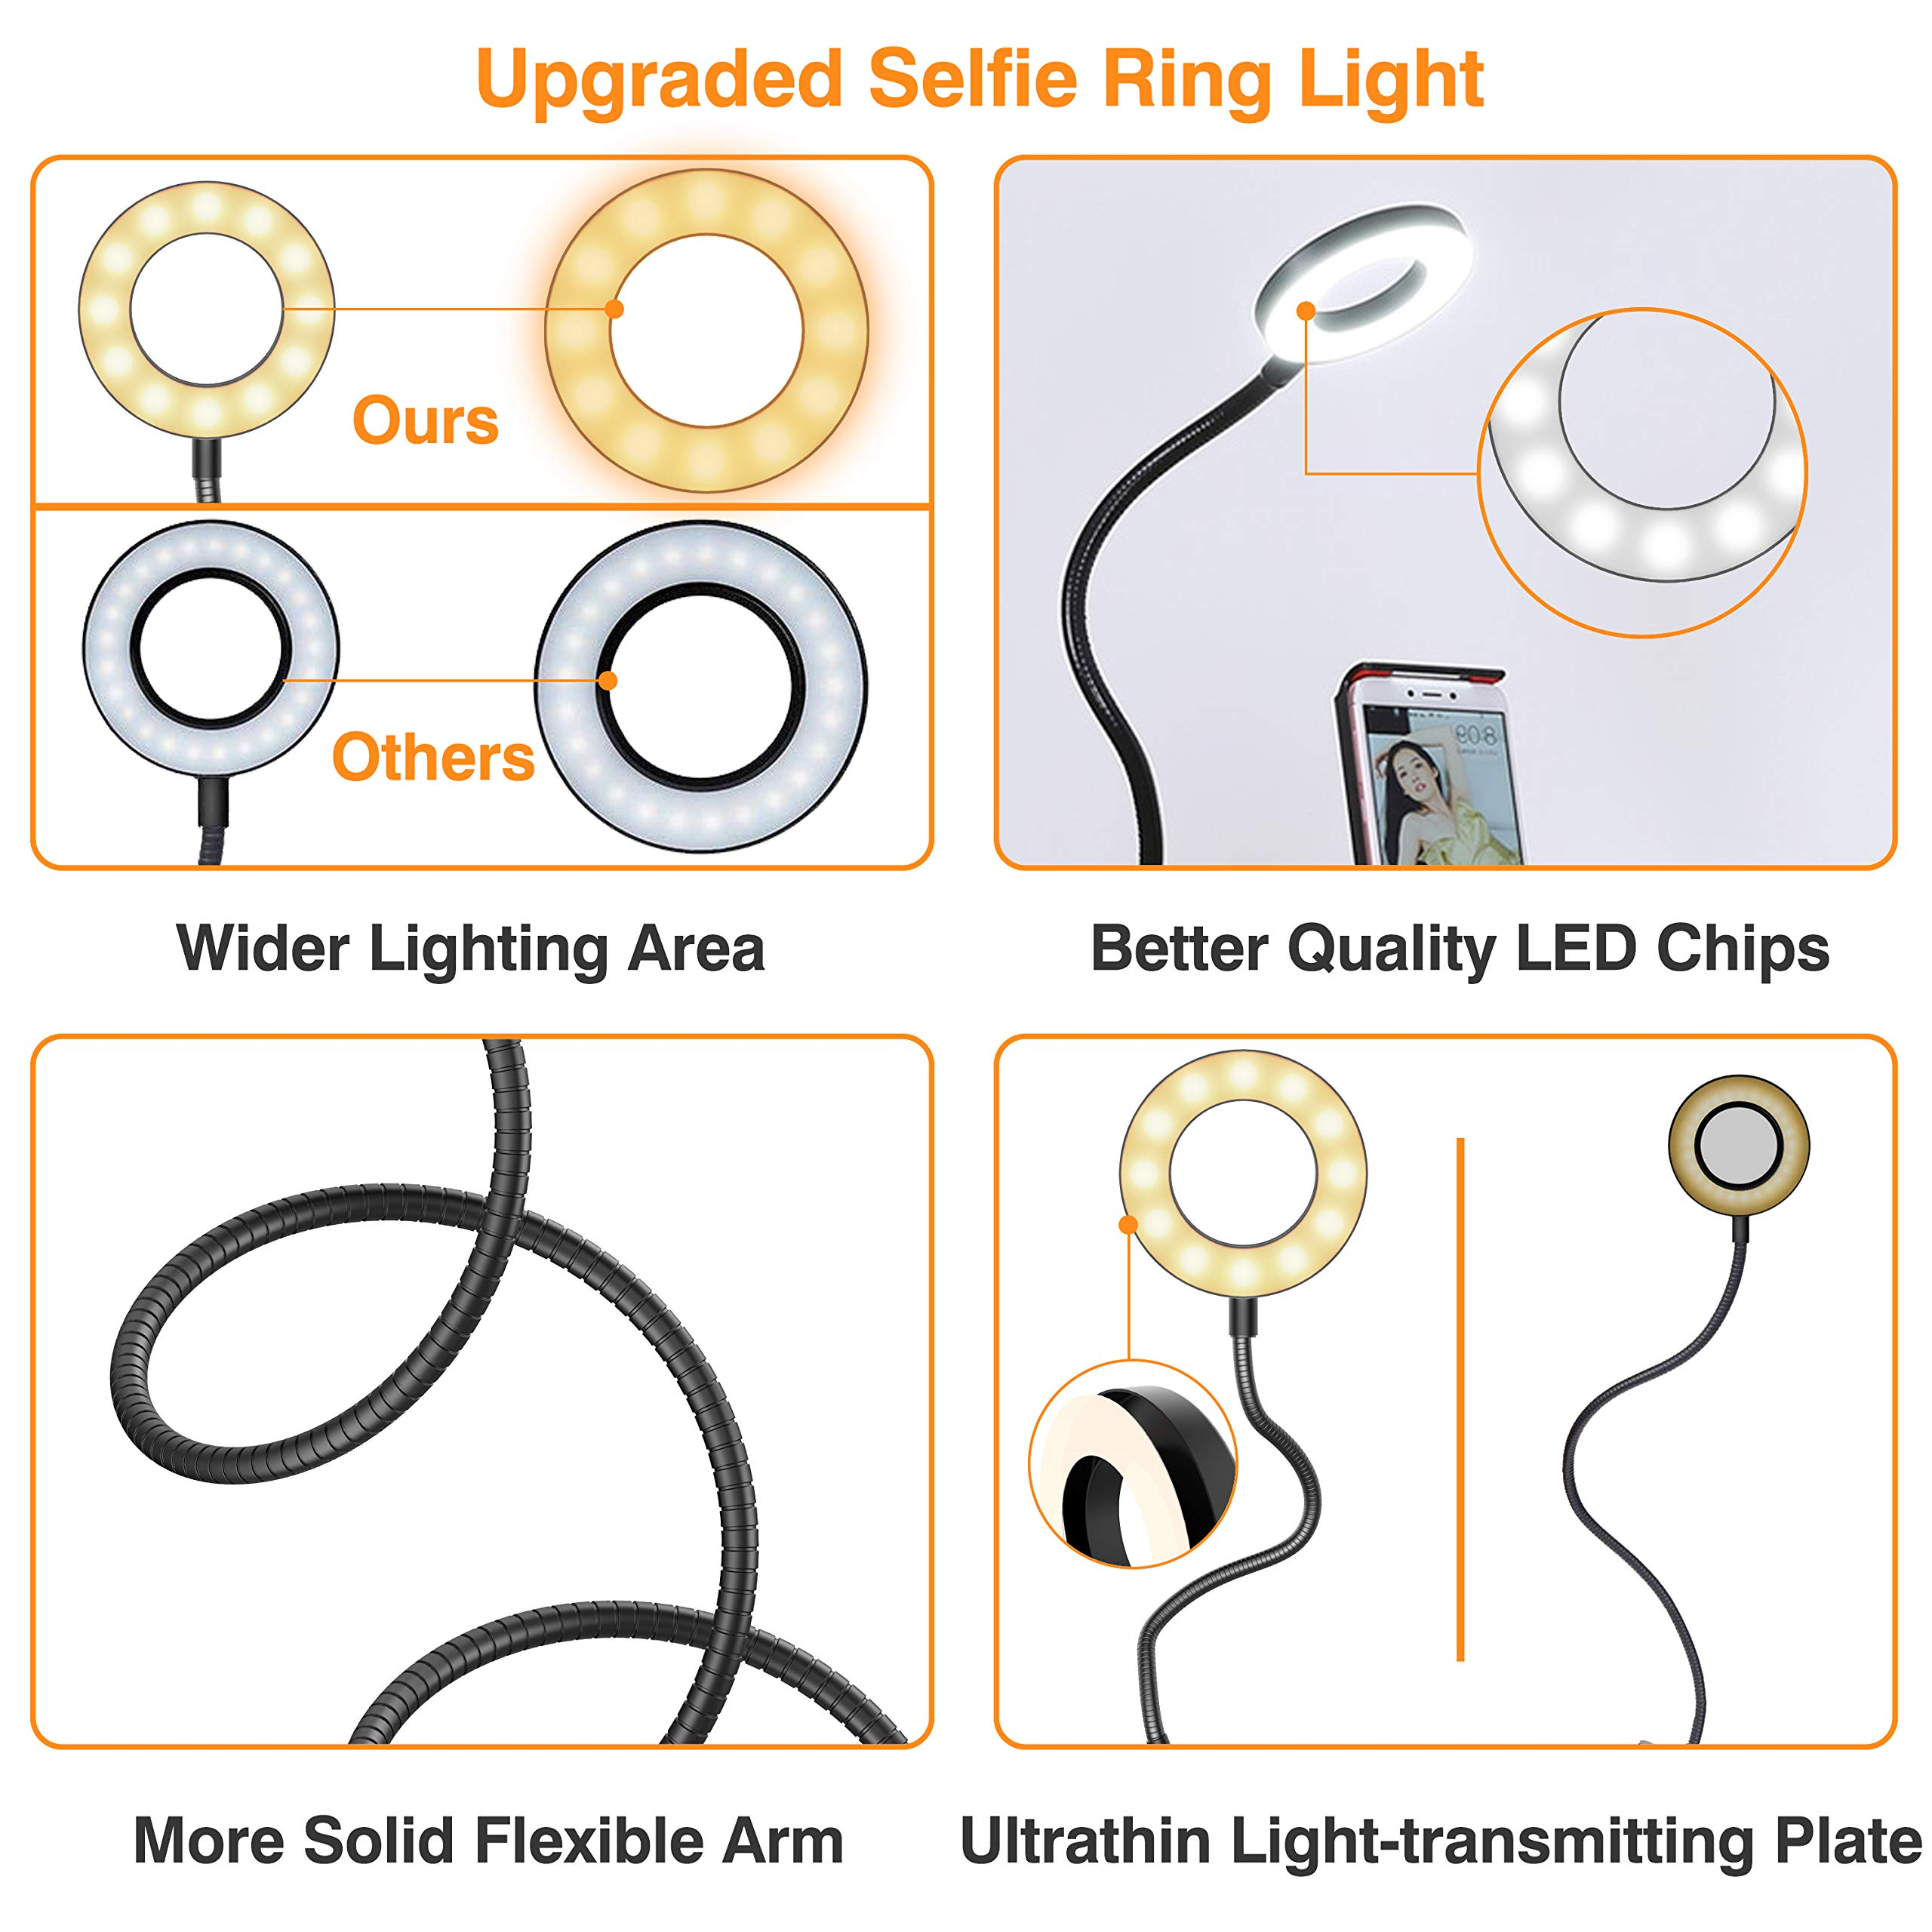 Selfie Ring Light, UPGRADED Selfie Light with Cell Phone Holder Stand for Live Stream Makeup Including Remote Shutter, LED Camera Light 3 Light Mode 10 Level Brightness Flexible Arm for iPhone/Android by Erligpowht (Image #2)